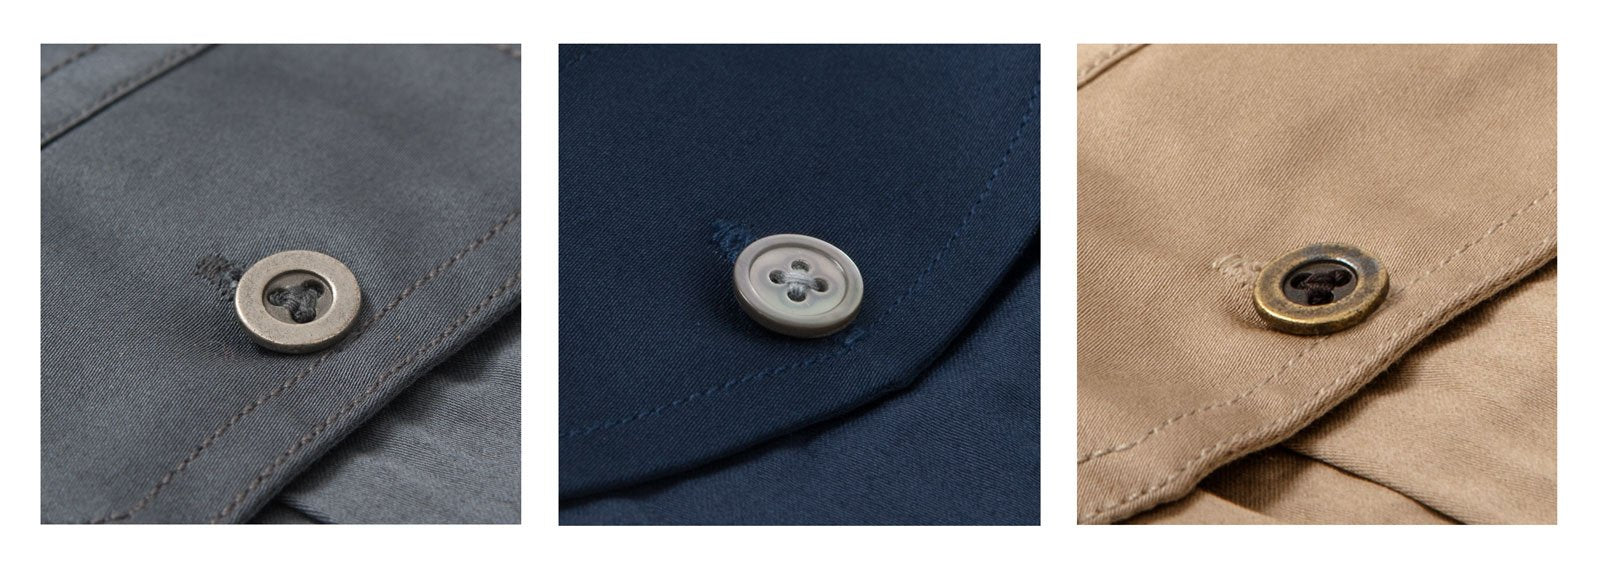 Mother-of-Pearl and Metal Buttons on Men's Button Up Shirt